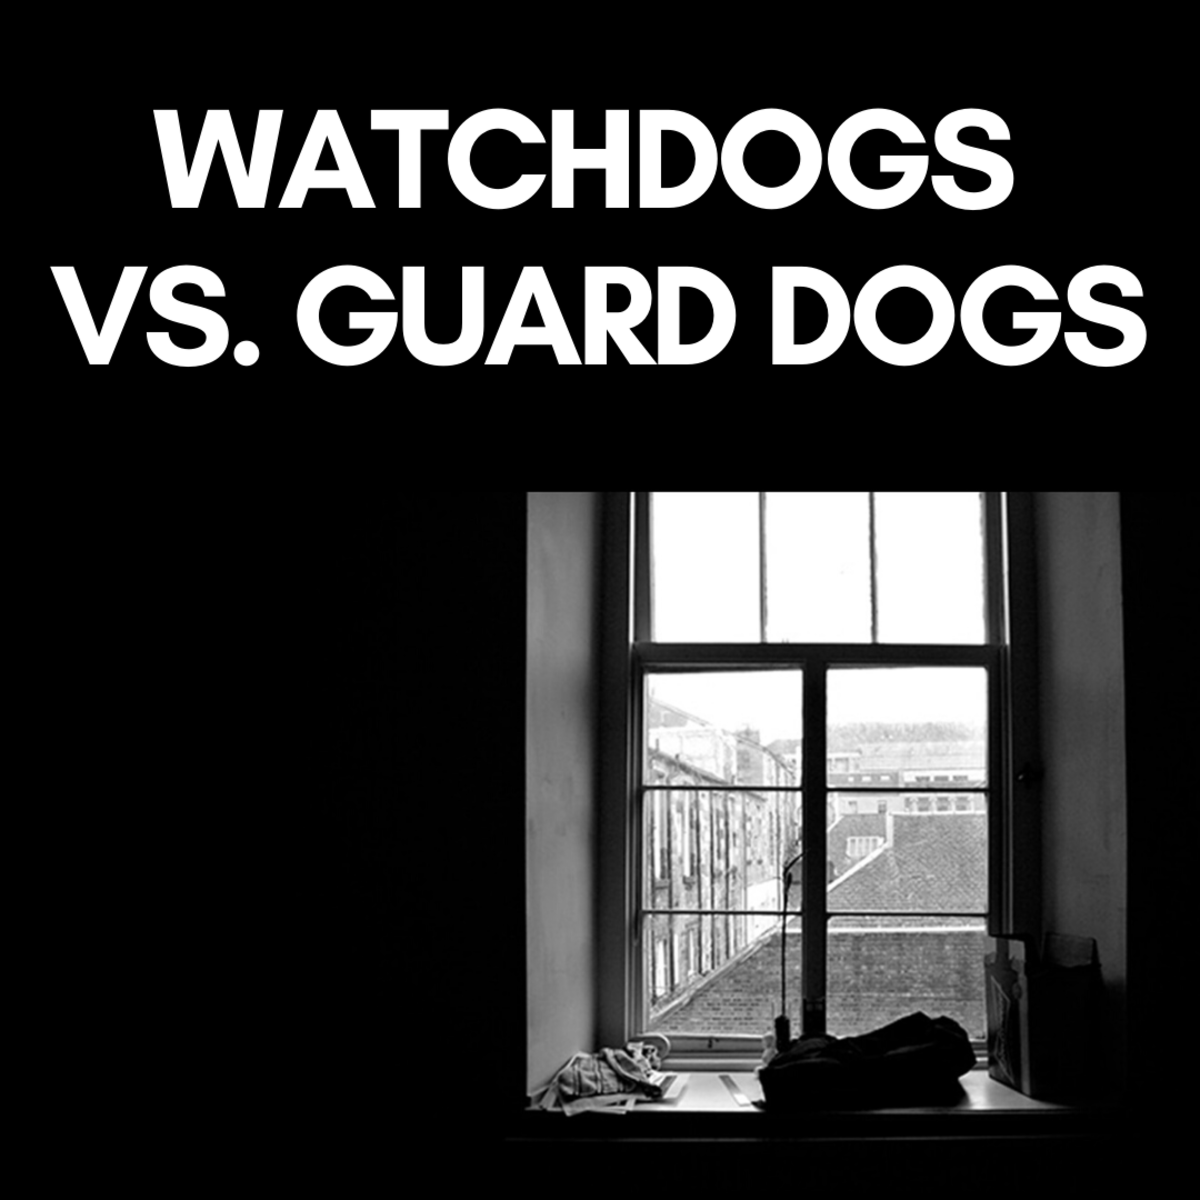 Small dogs generally make good watchdogs.